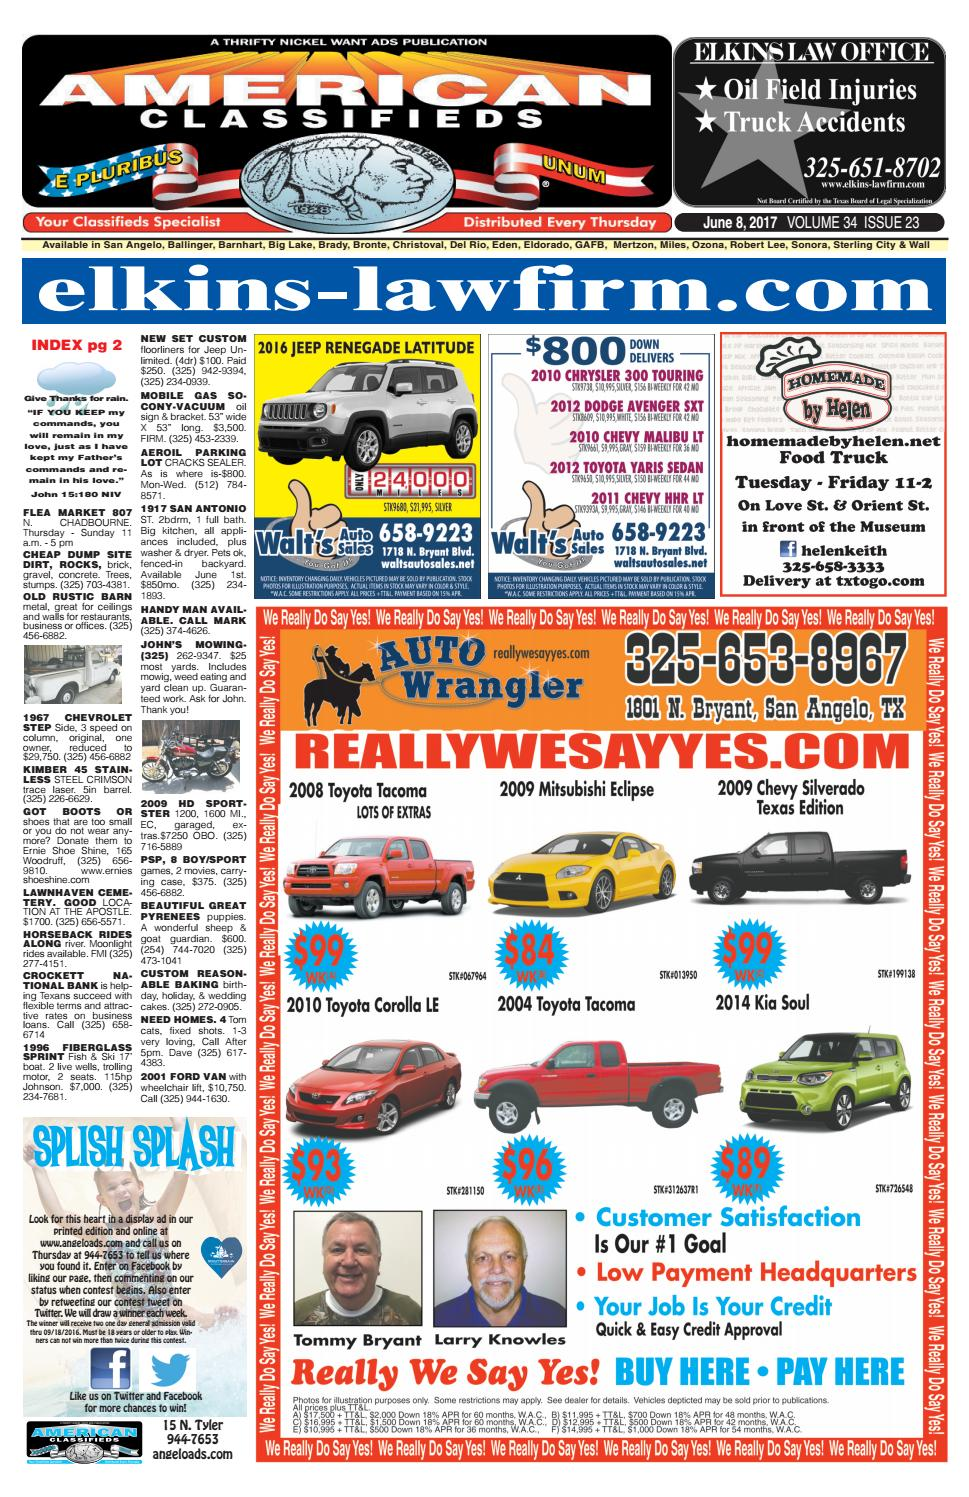 San angelo american classifieds 060817 by san angelo american san angelo american classifieds 060817 by san angelo american classifieds issuu fandeluxe Choice Image